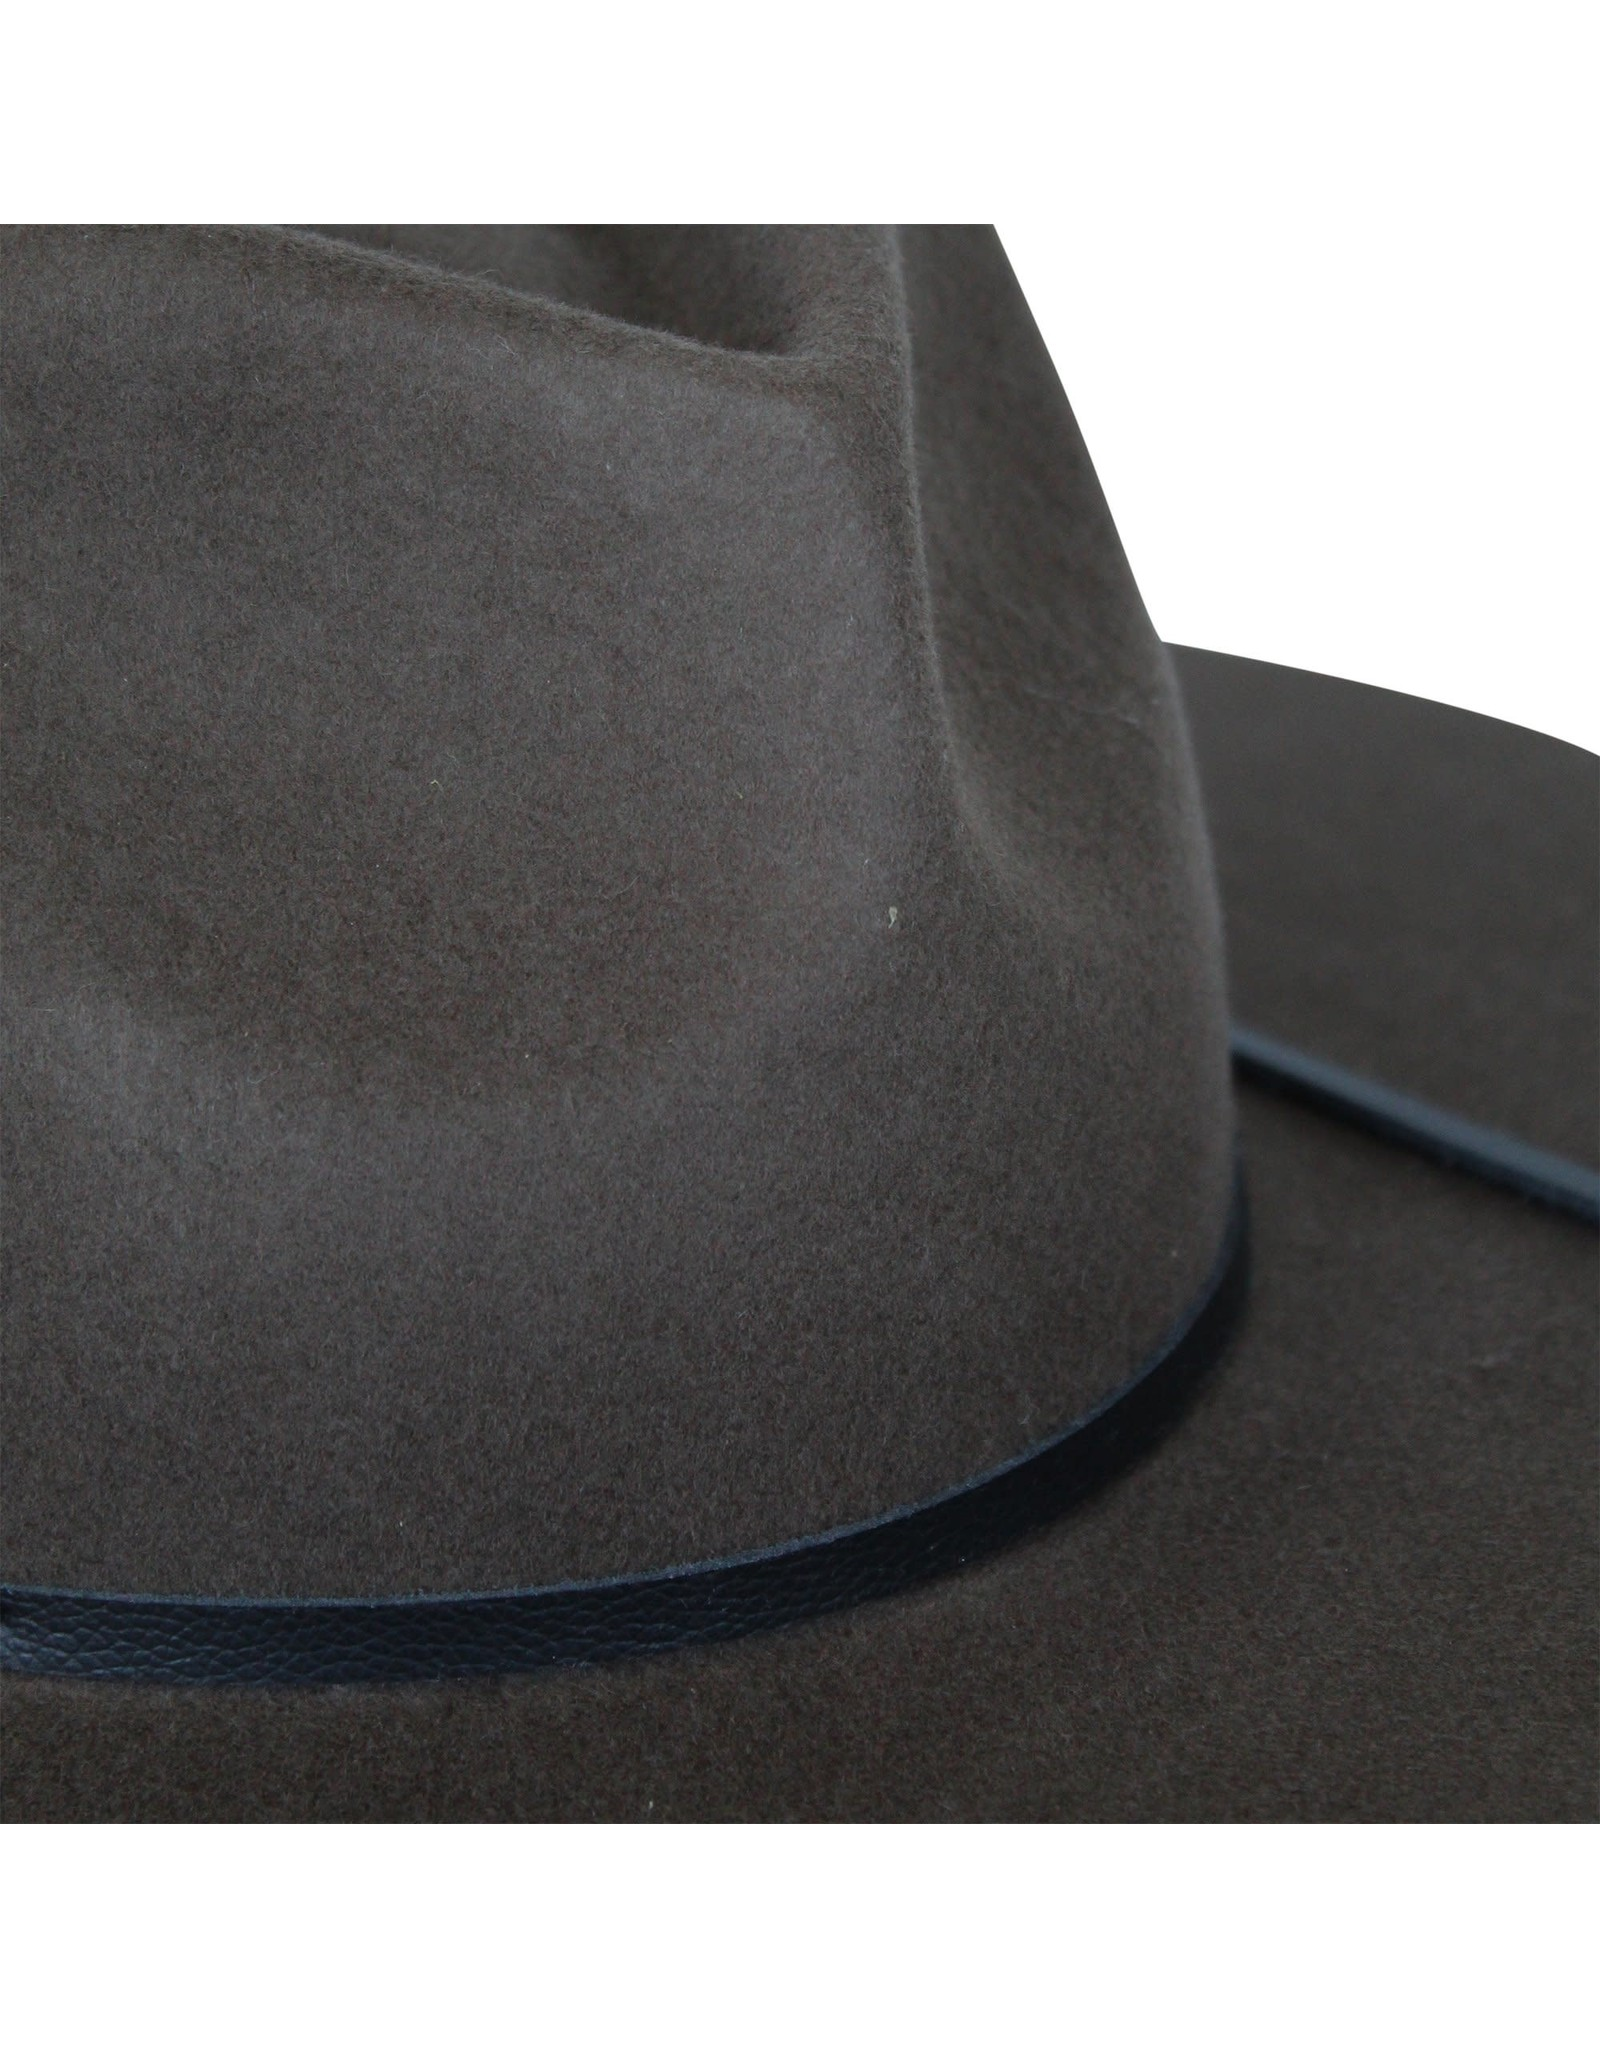 Ace of Something Ace of Something - Bronco fedora with pinched crown and broad brim (truffle)